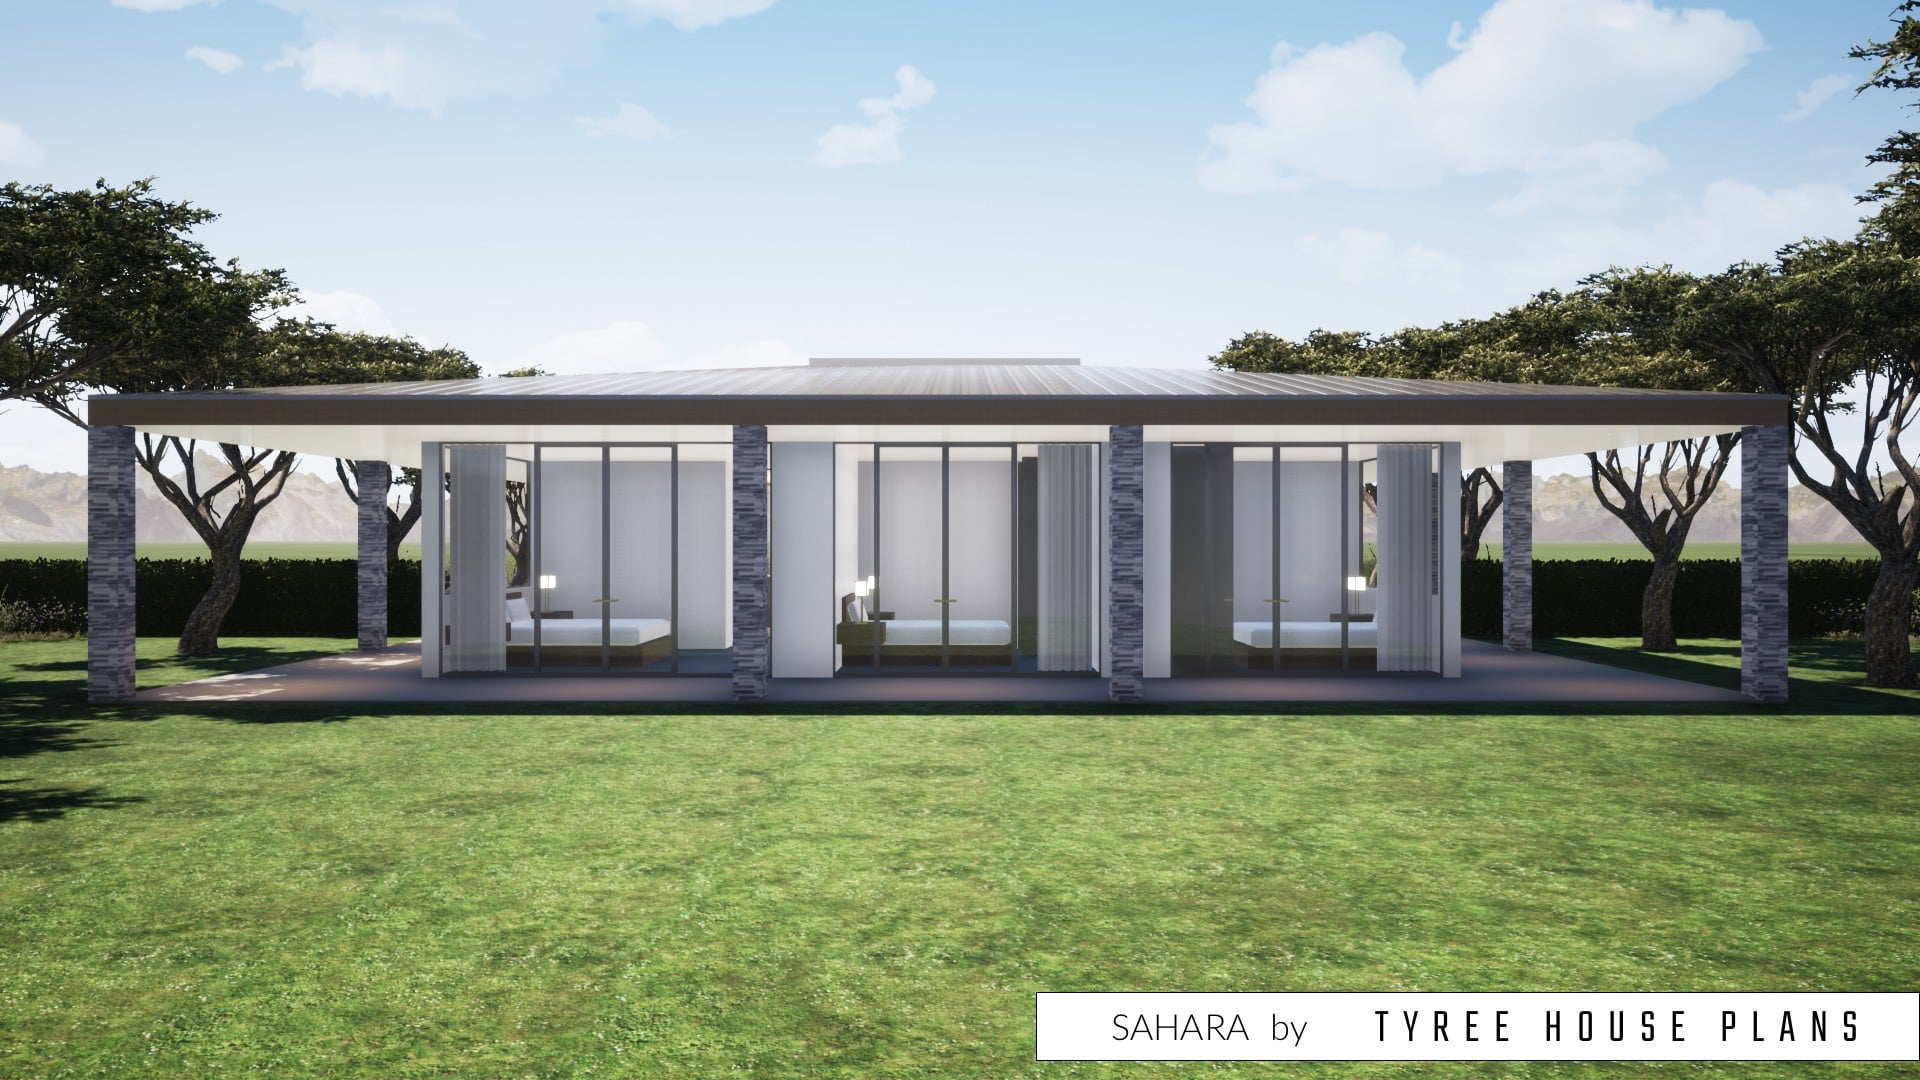 Sahara House Plan by Tyree House Plans